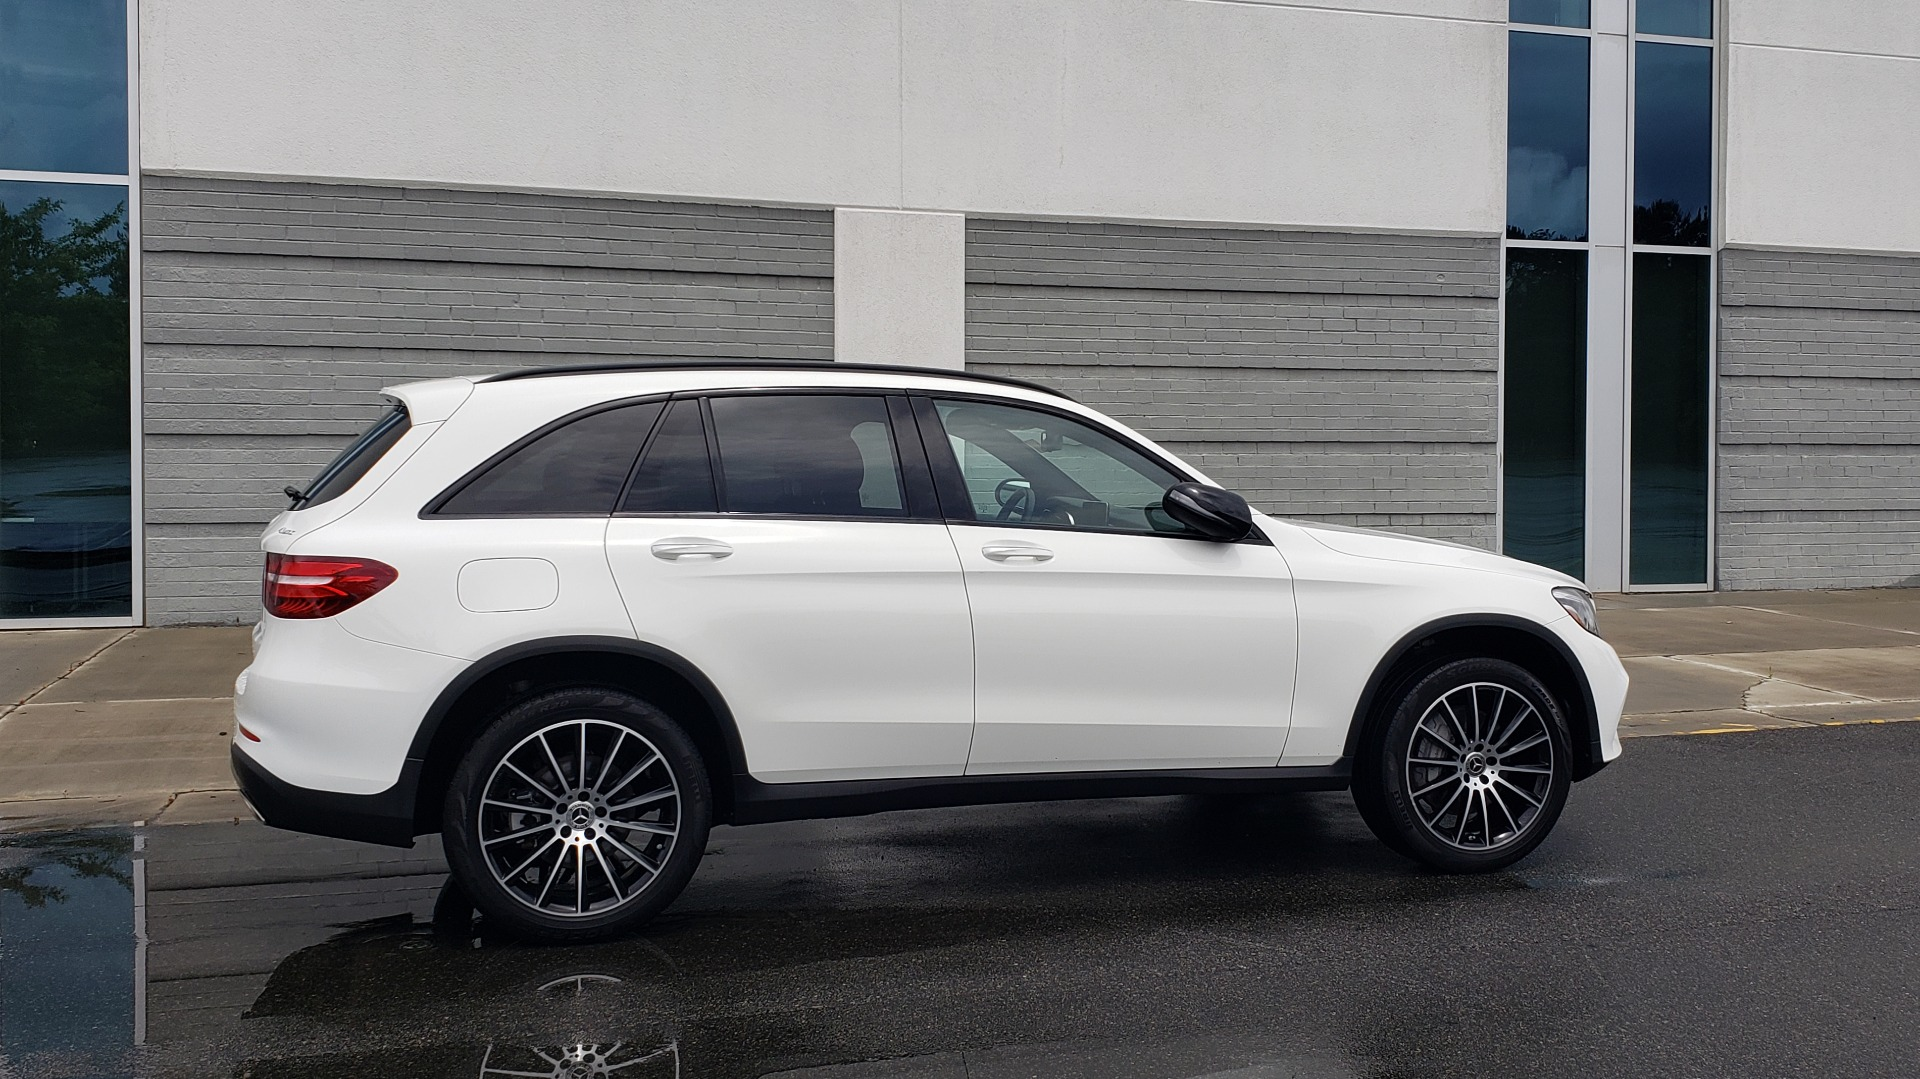 Used 2018 Mercedes-Benz GLC 300 4MATIC PREMIUM / NAV / BURMESTER SND / PANO-ROOF / REARVIEW for sale $35,495 at Formula Imports in Charlotte NC 28227 7